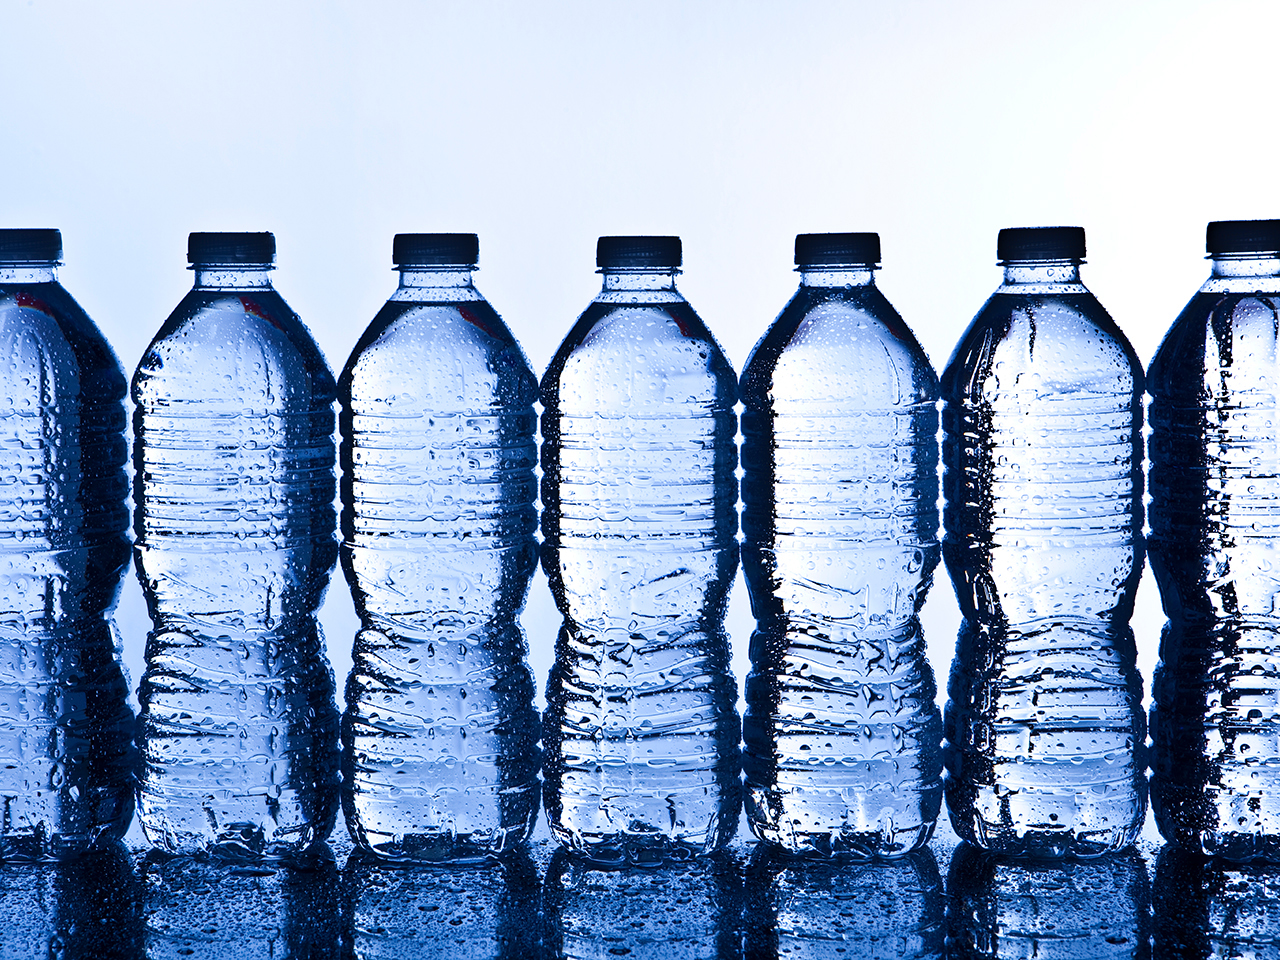 Is Bottled Water Safe to Drink After Sitting in a Hot Car?